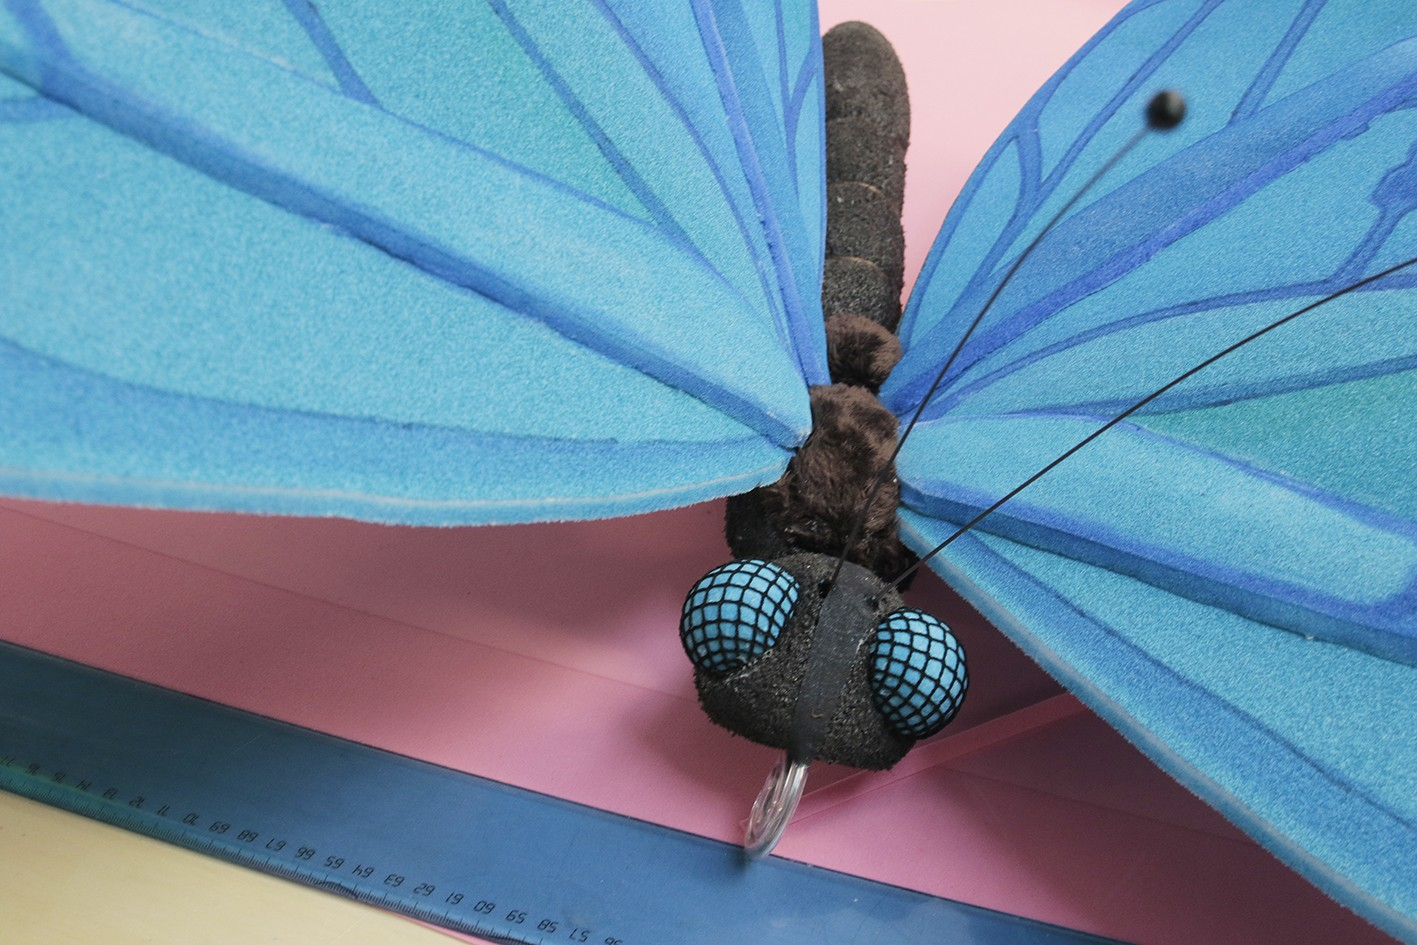 Detail of the head and wings of a large blue butterfly